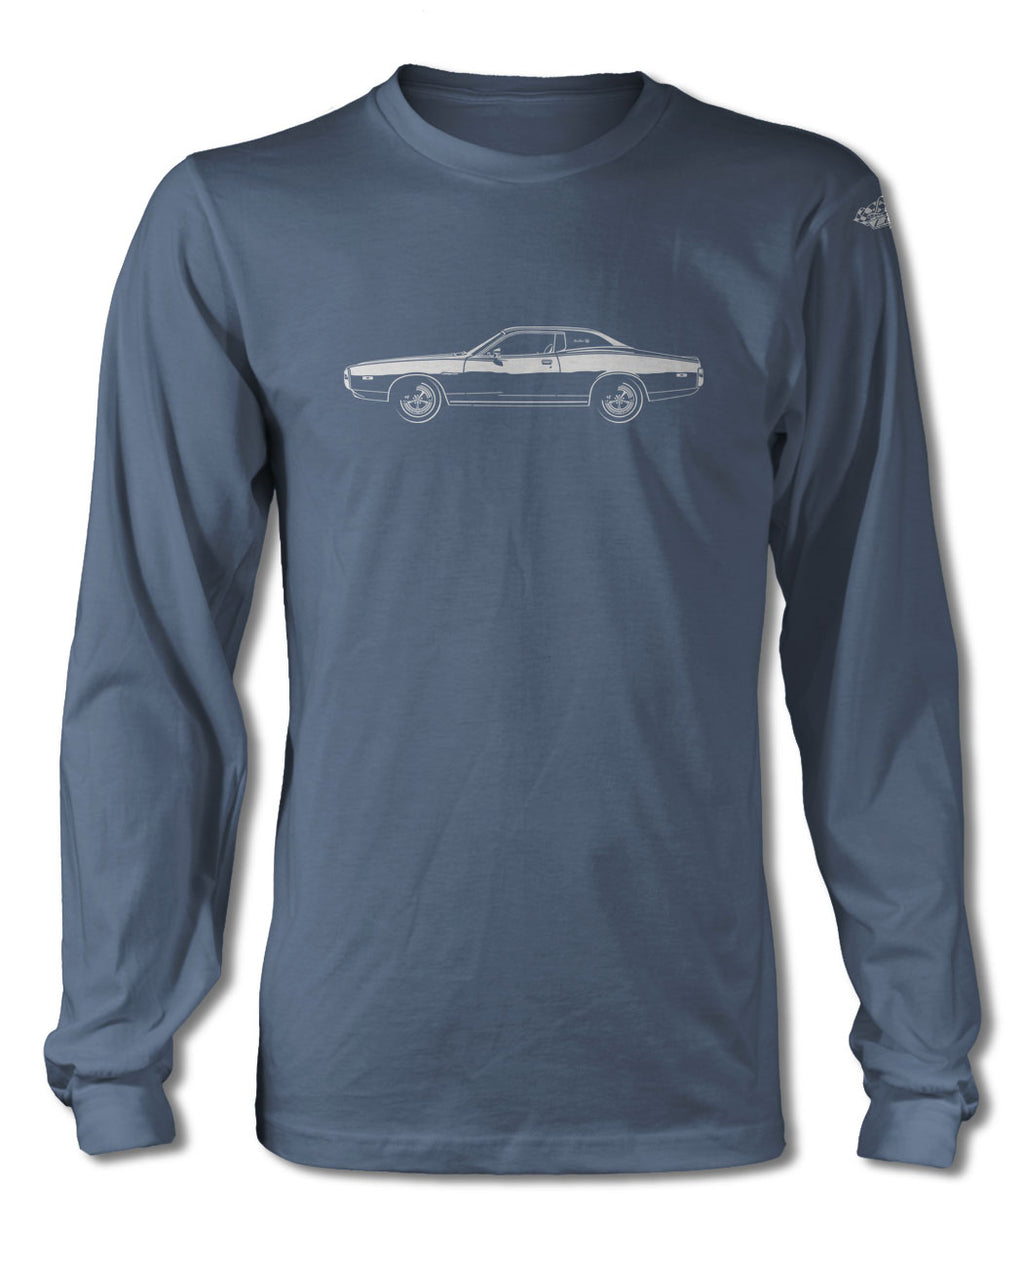 1972 Dodge Charger SE Hardtop T-Shirt - Long Sleeves - Side View